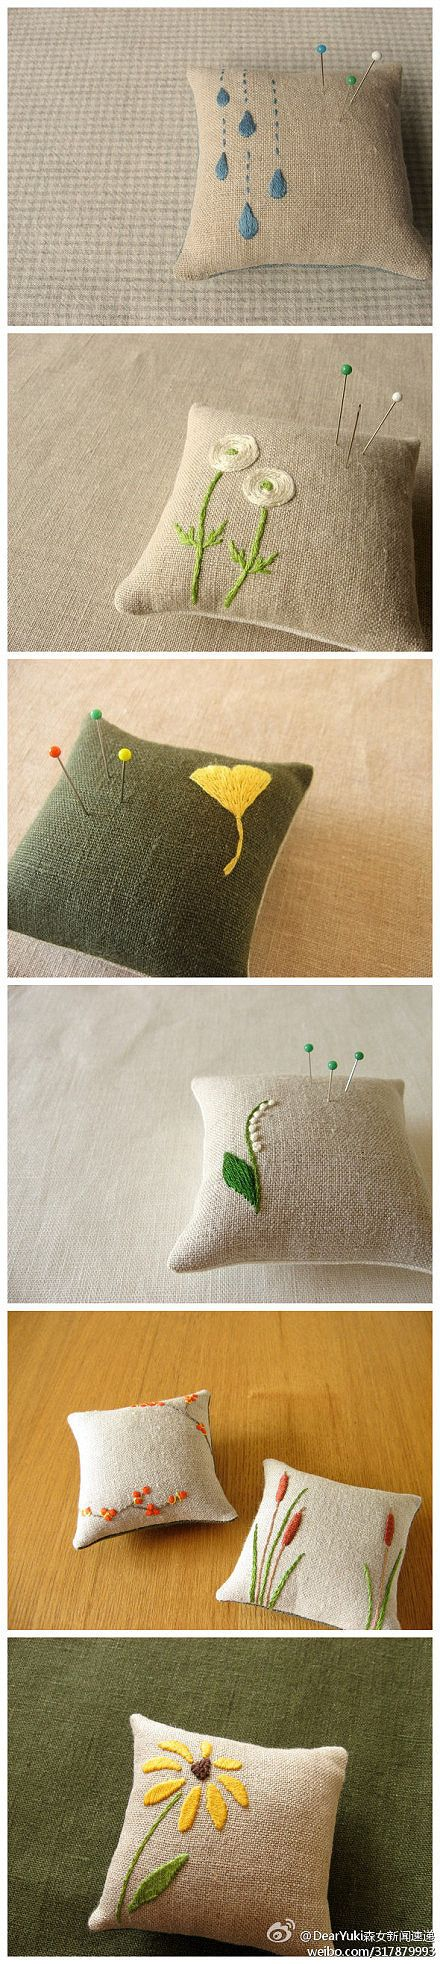 beautiful designs for pillows, especially the raindrops one :] embroidery sewing DIY